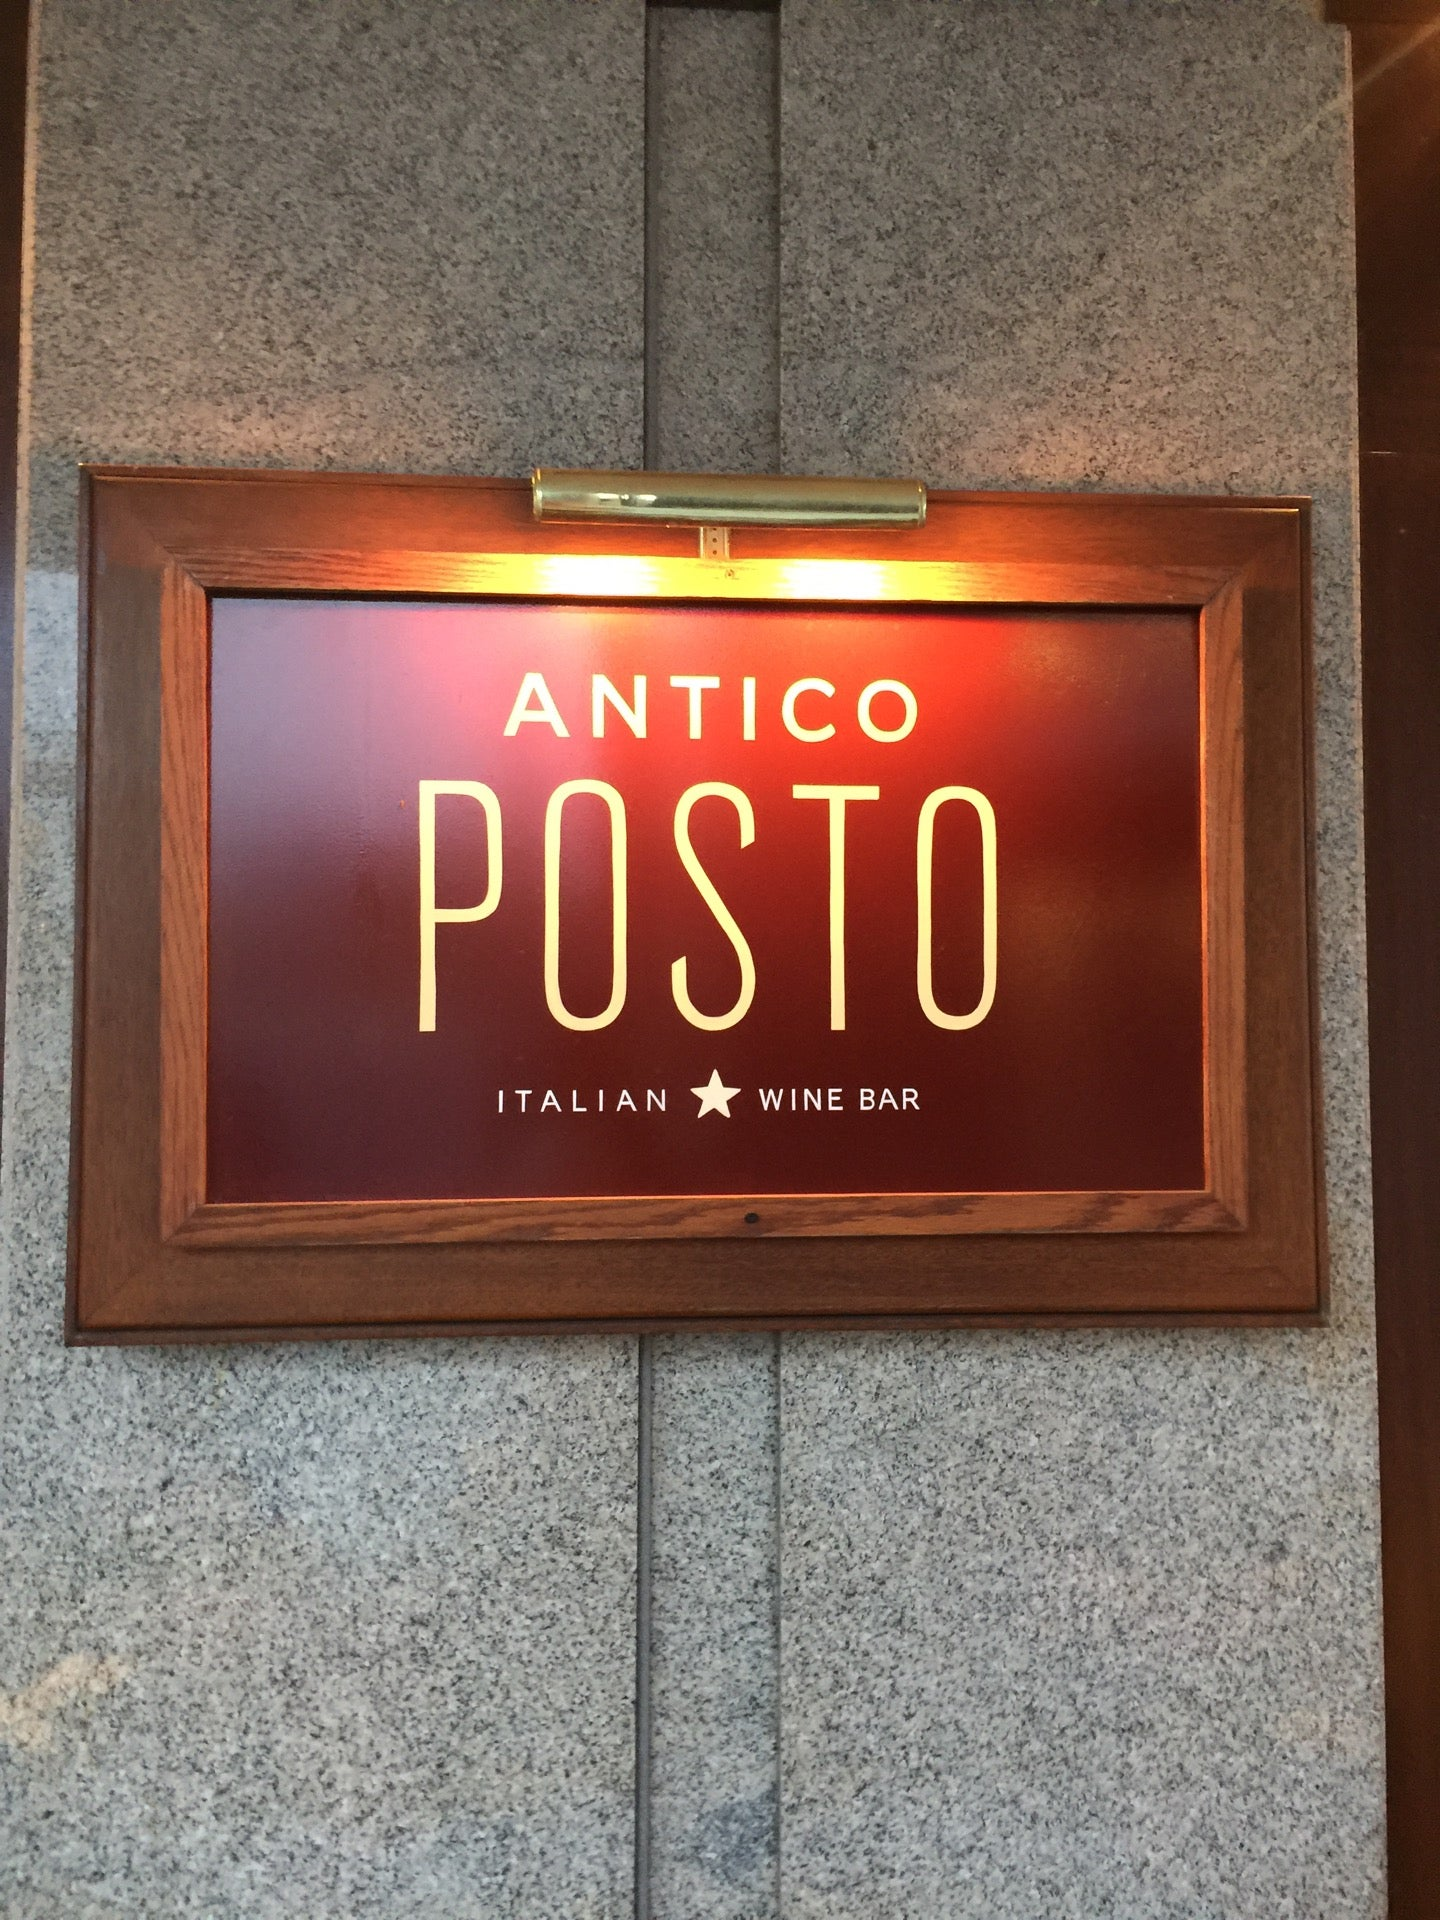 Call One for Antico Poso,brick-oven pizza,carryout,cozy,daily risotto,gelato,gnocchi,homemade gnocchi,homemade pasta,italian,pasta,ravioli,ricotta dumplings,well-priced,wine,wine bar